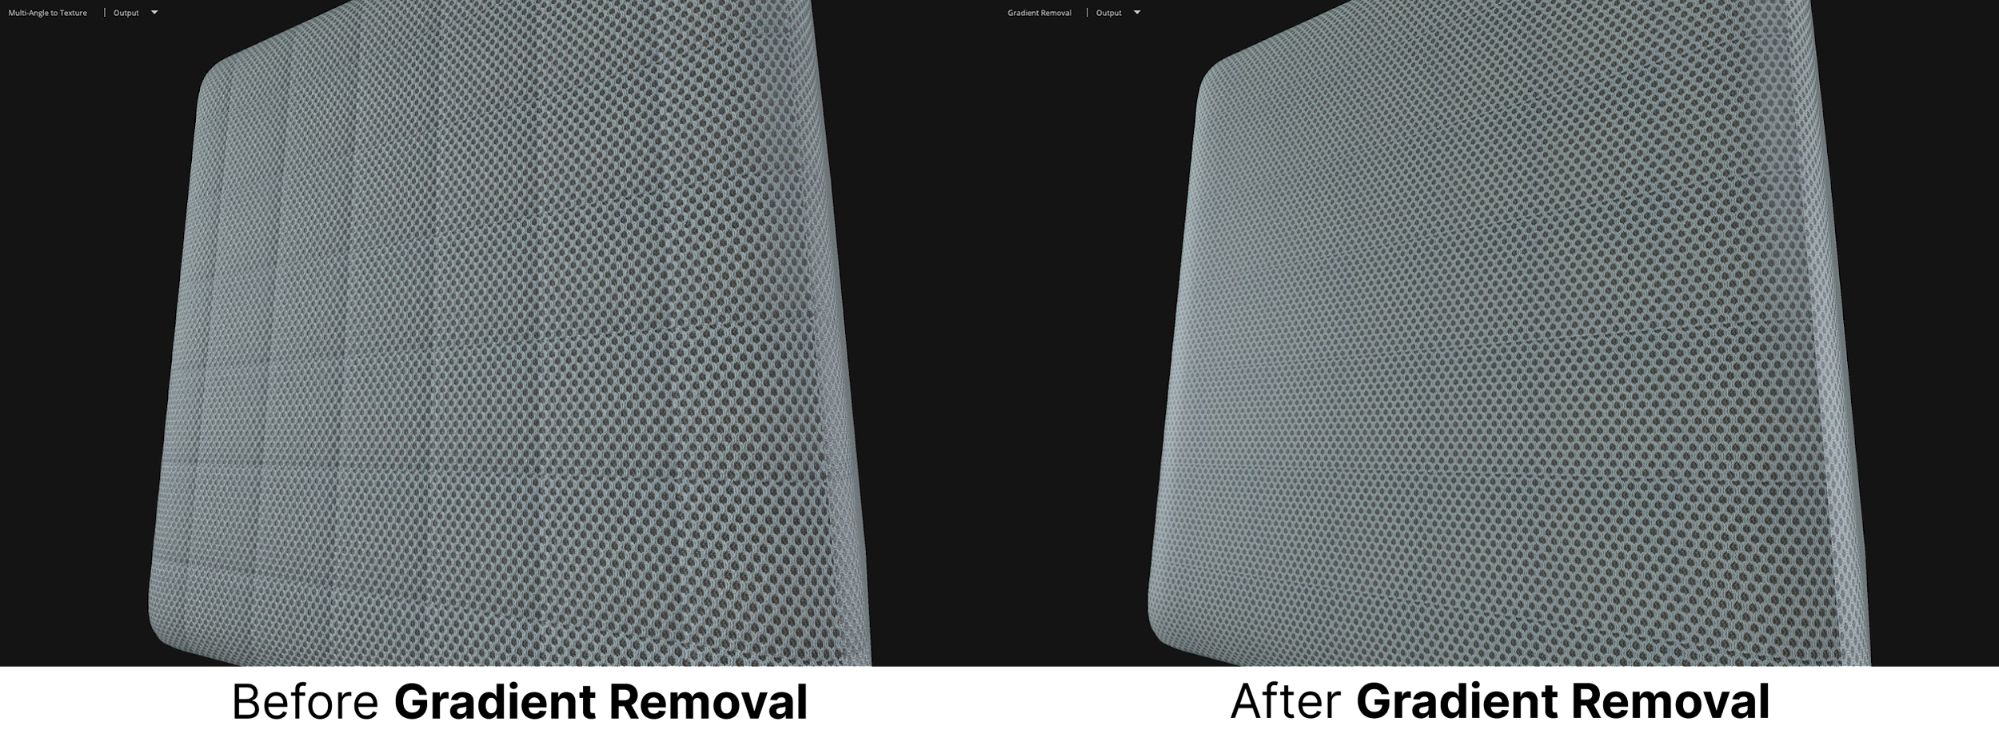 Image showing a before and after of adding a texture gradient to speakers in ArtEngine